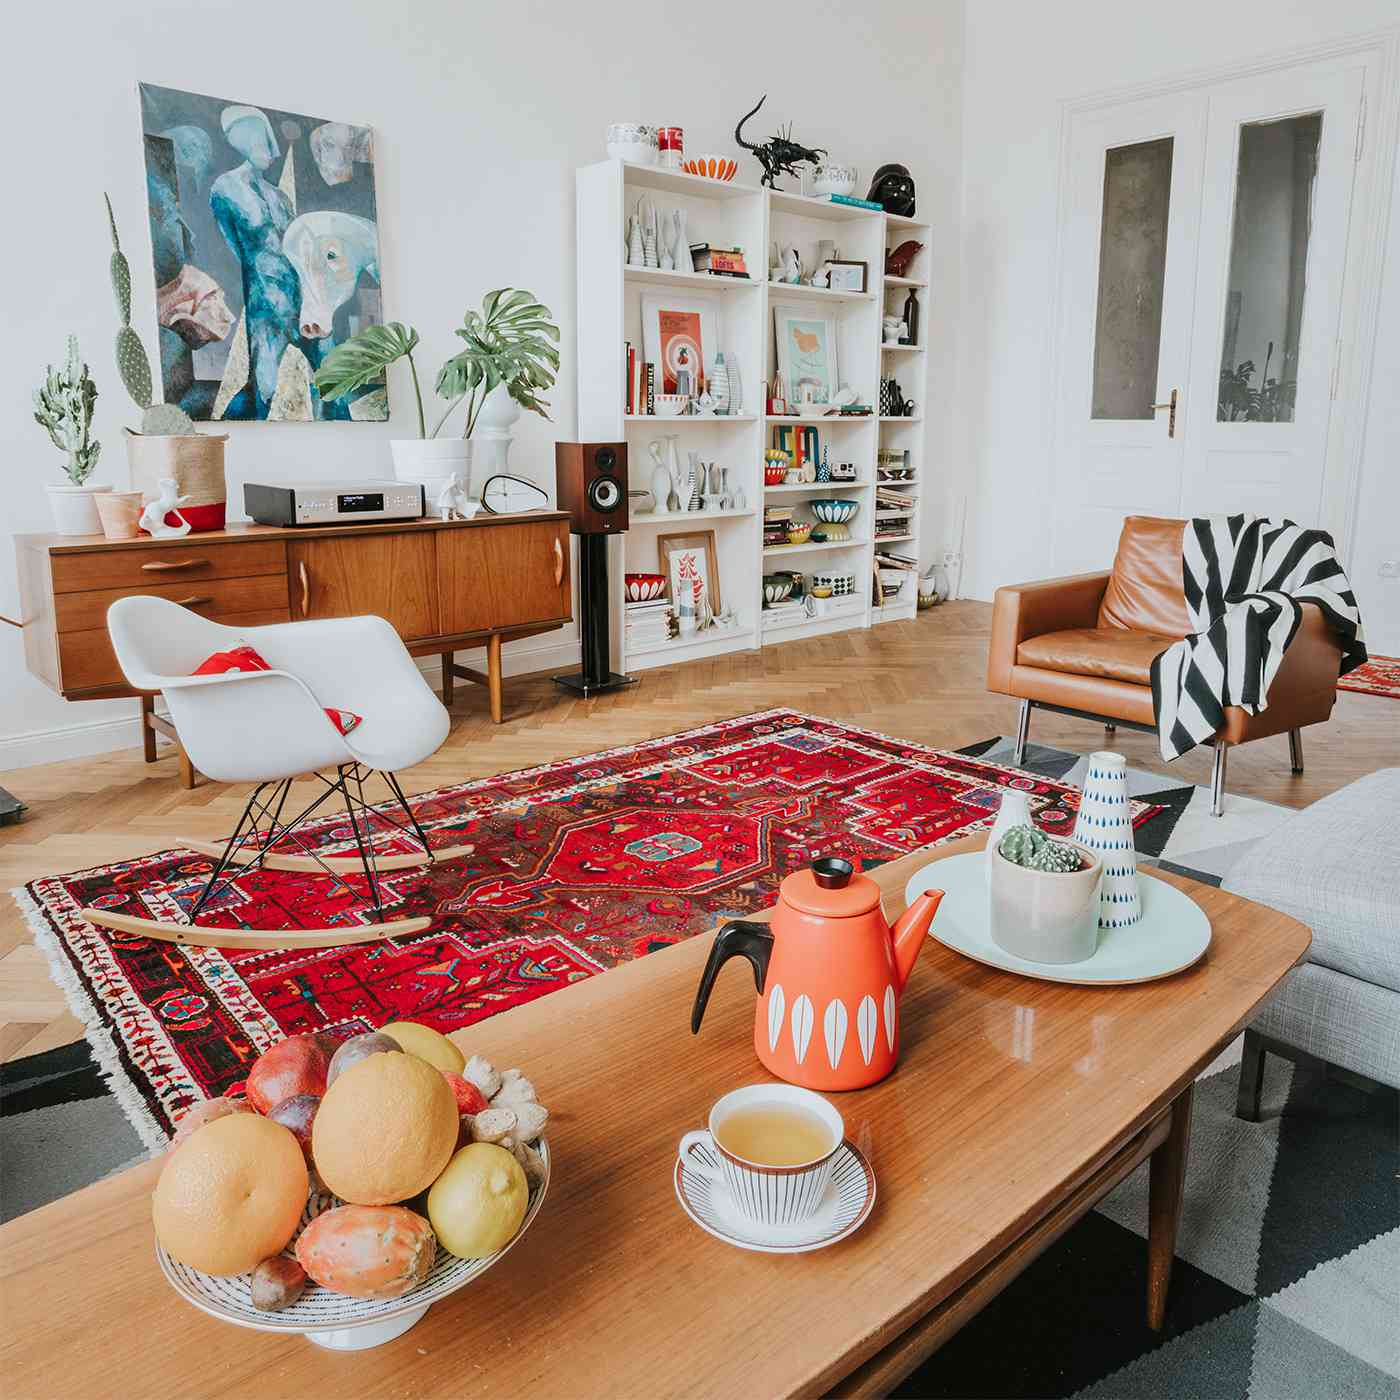 5 Ways to Add Retro Style to Your Decor